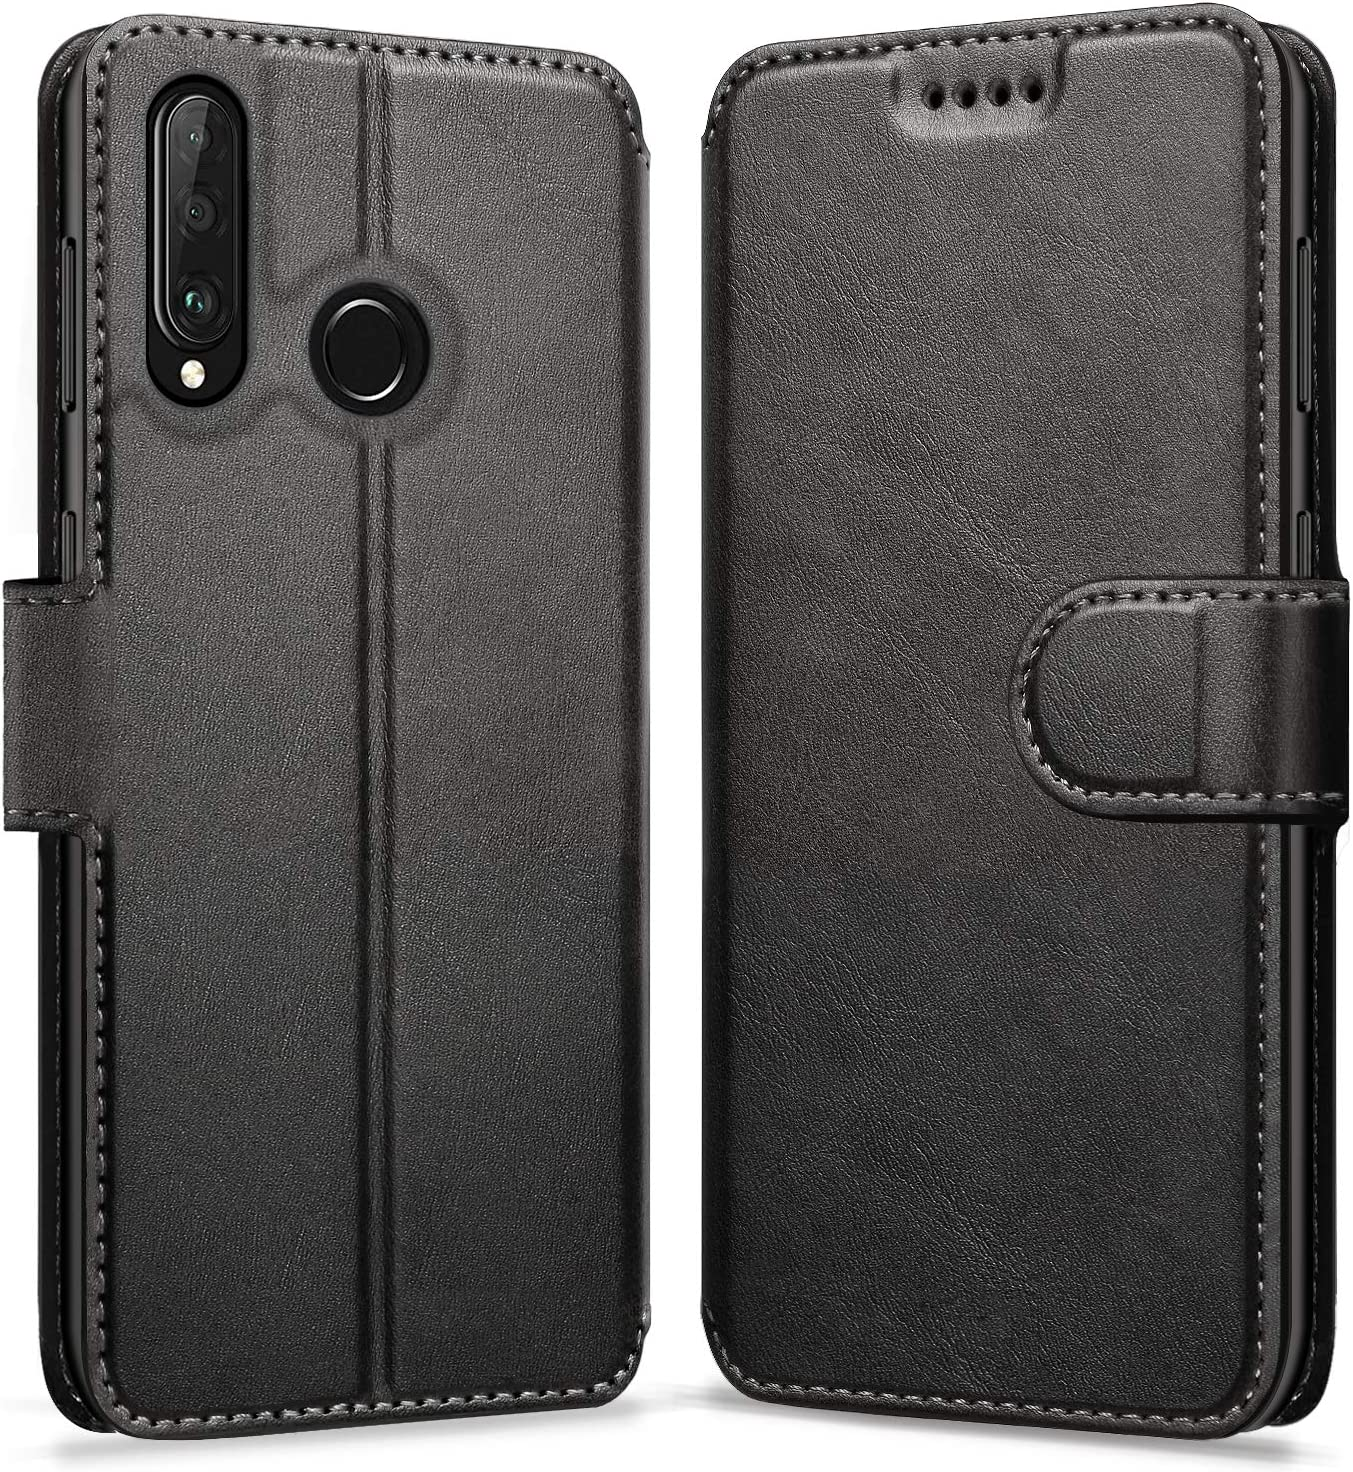 ykooe Case Compatible with Huawei P30 Lite, Leather Wallet Flip Case Huawei P30 Lite Phone Case with Card Slots Protective Cover for Huawei P30 Lite